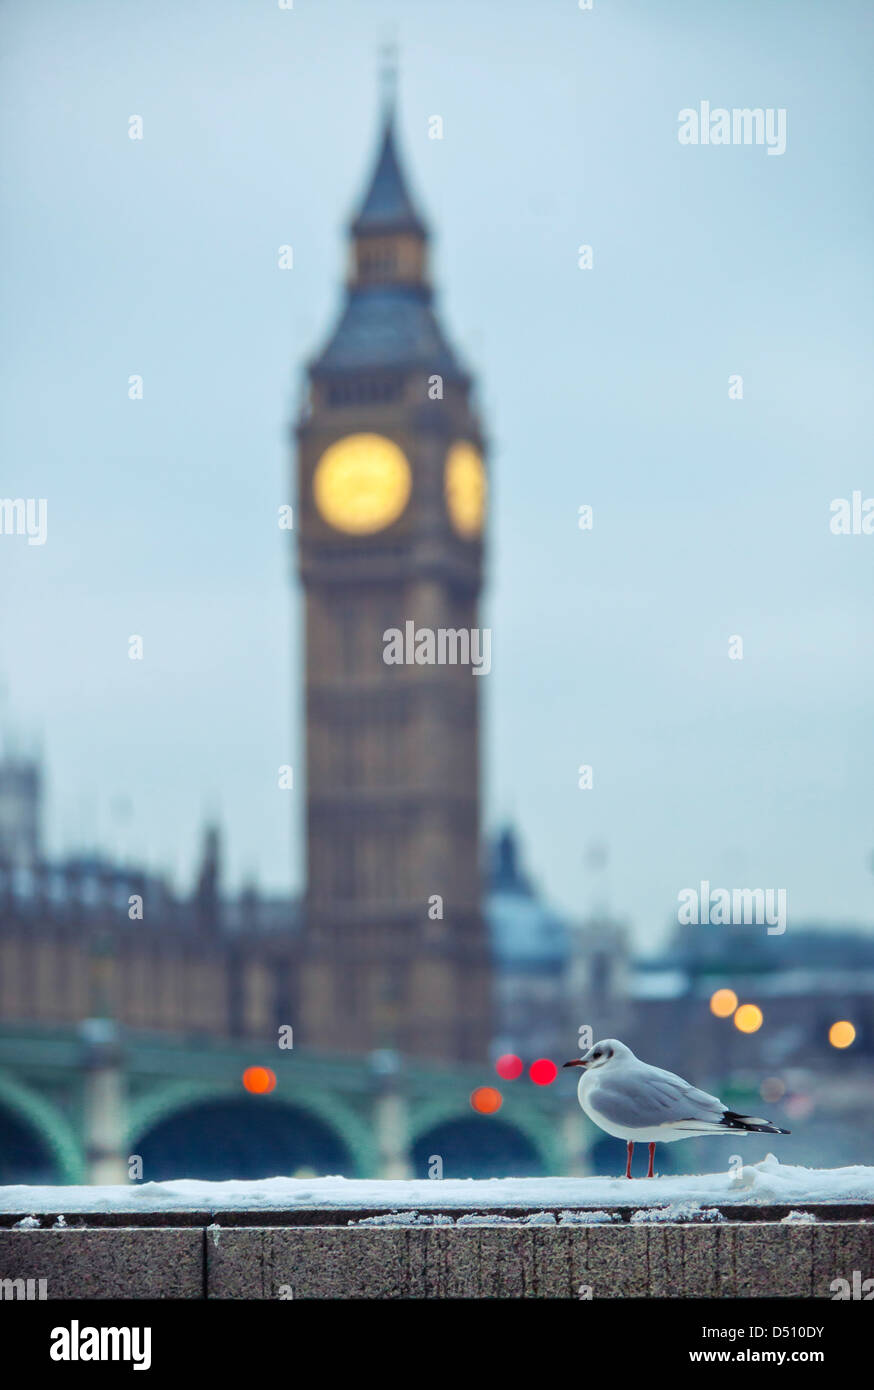 Common gull standing on snowy surface with the Big Ben Clock Tower on the background, London, England, UK - Stock Image